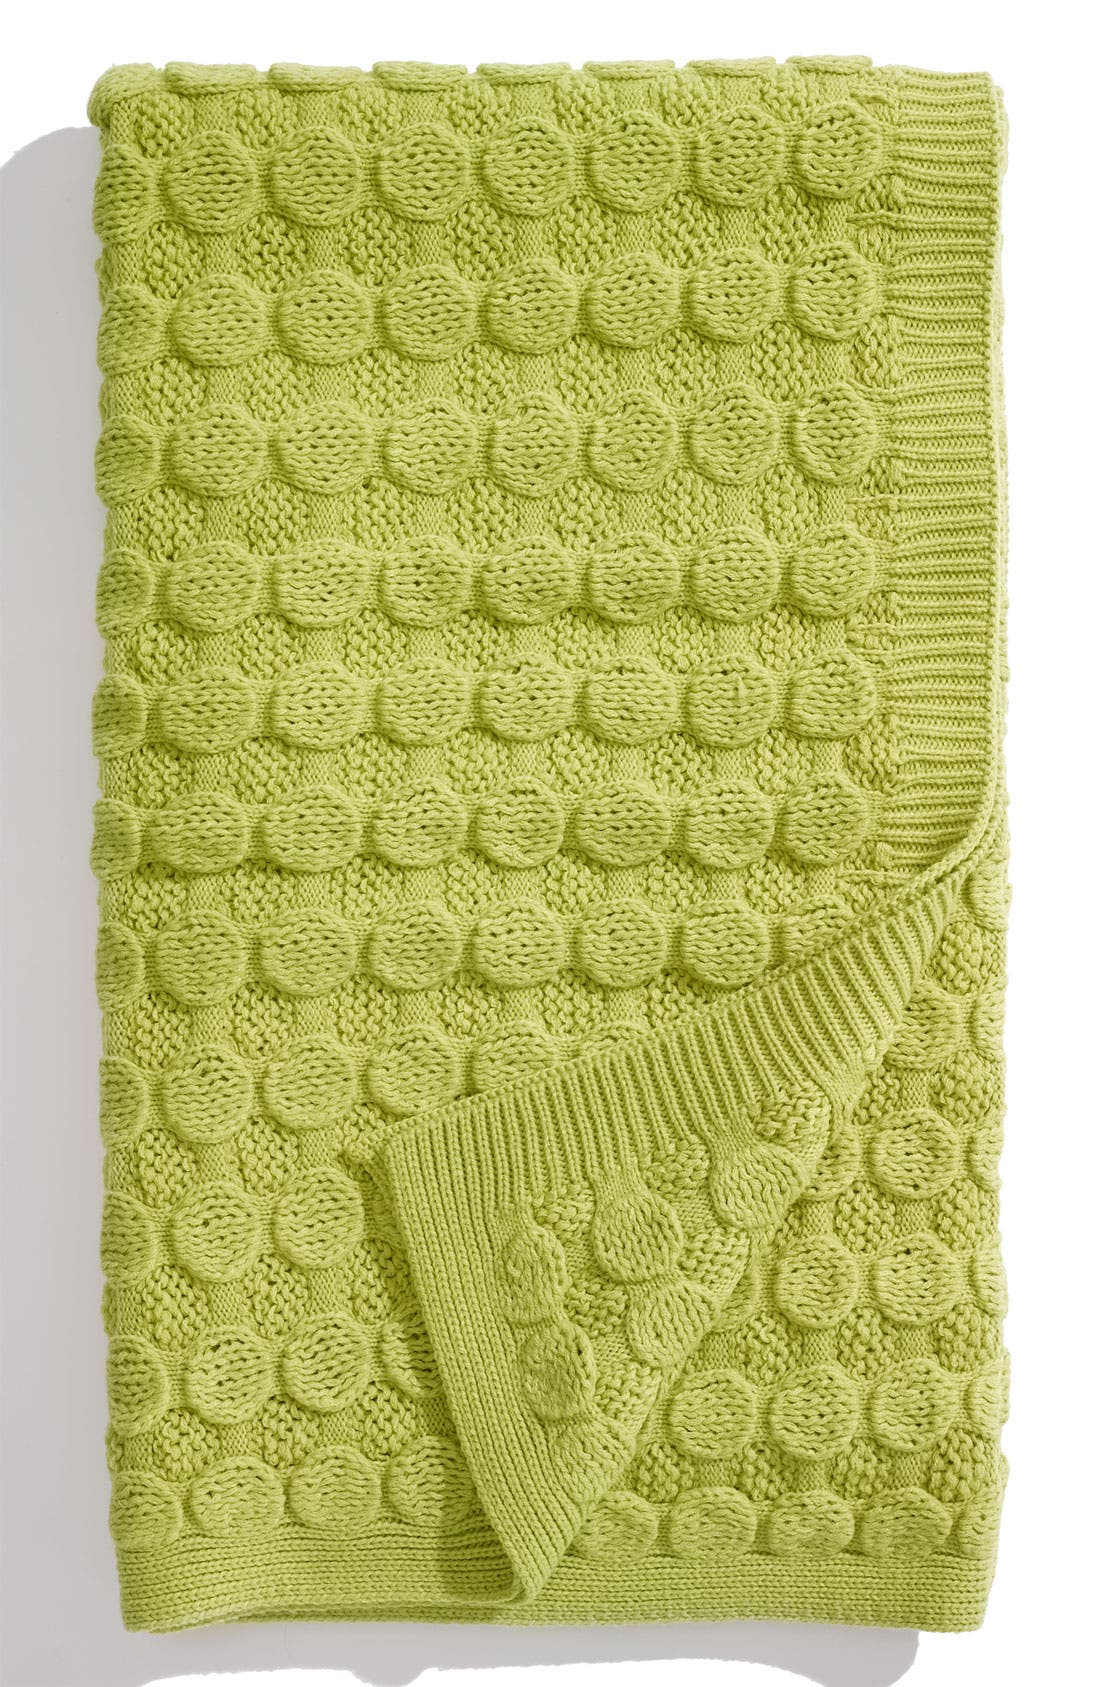 Main Image - Nordstrom at Home 'Bubble Wrap' Knit Throw